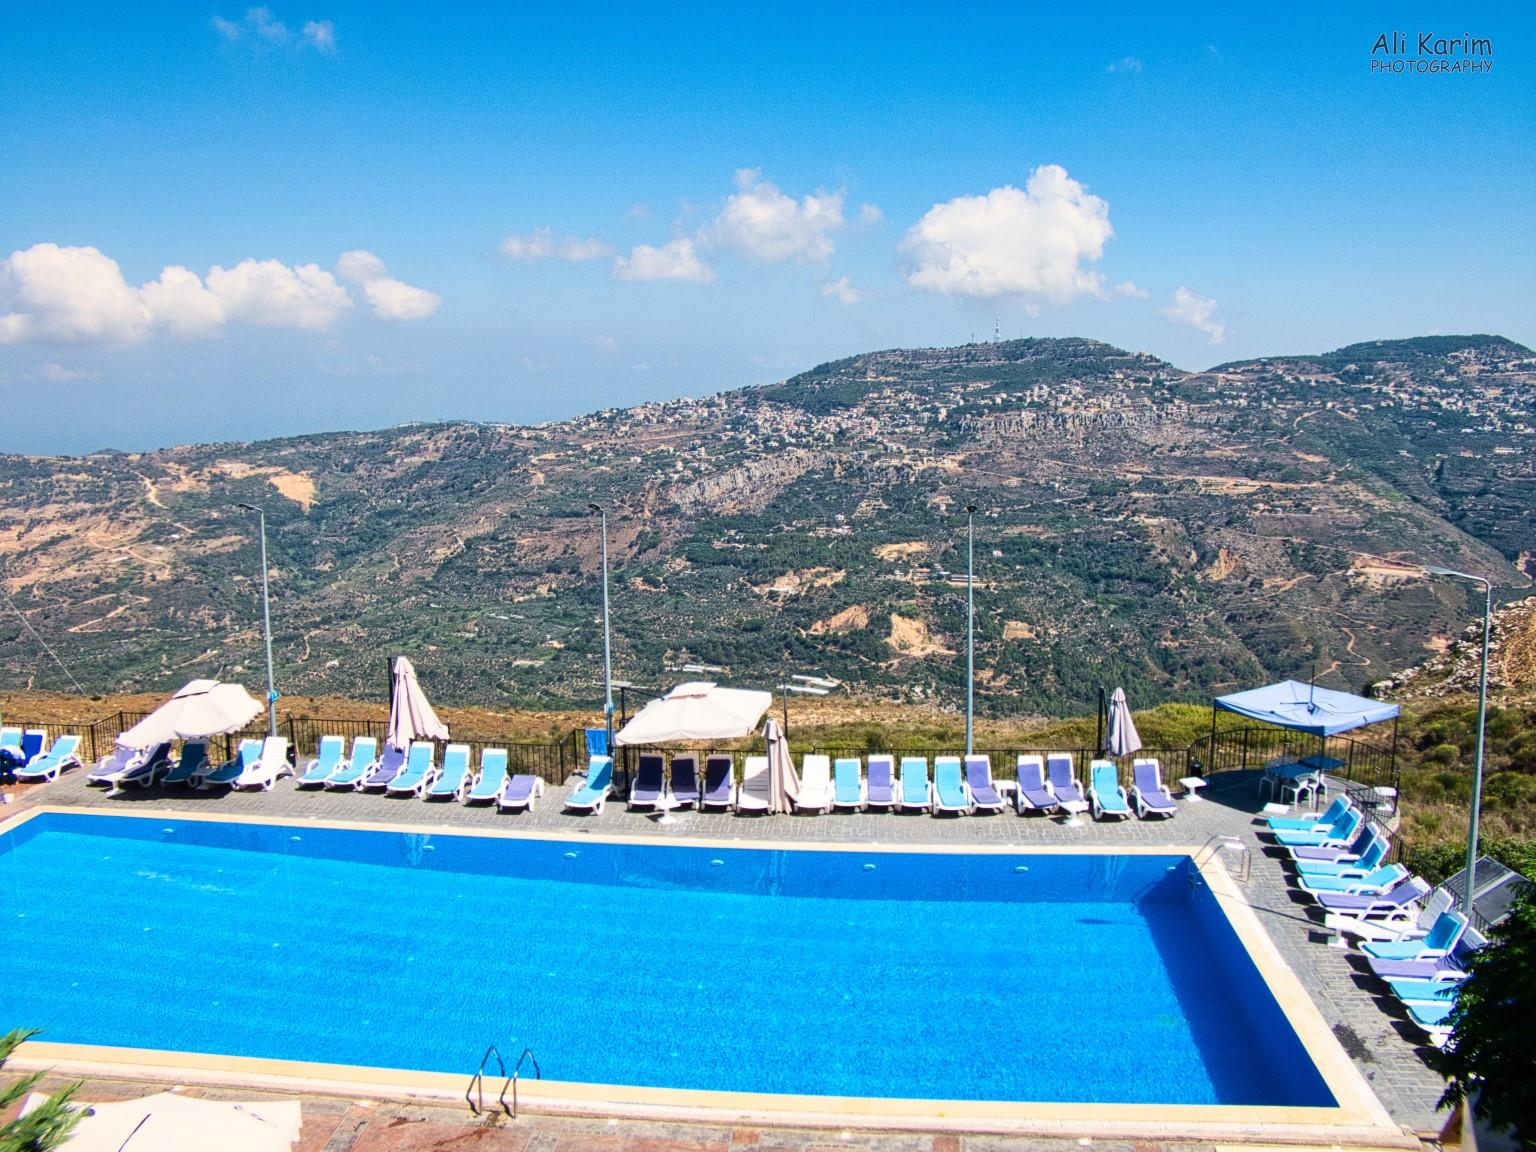 Druze and the Chouf Mountains Hotel and restaurant, with small towns across on the other side of the valley on the mountain-sides